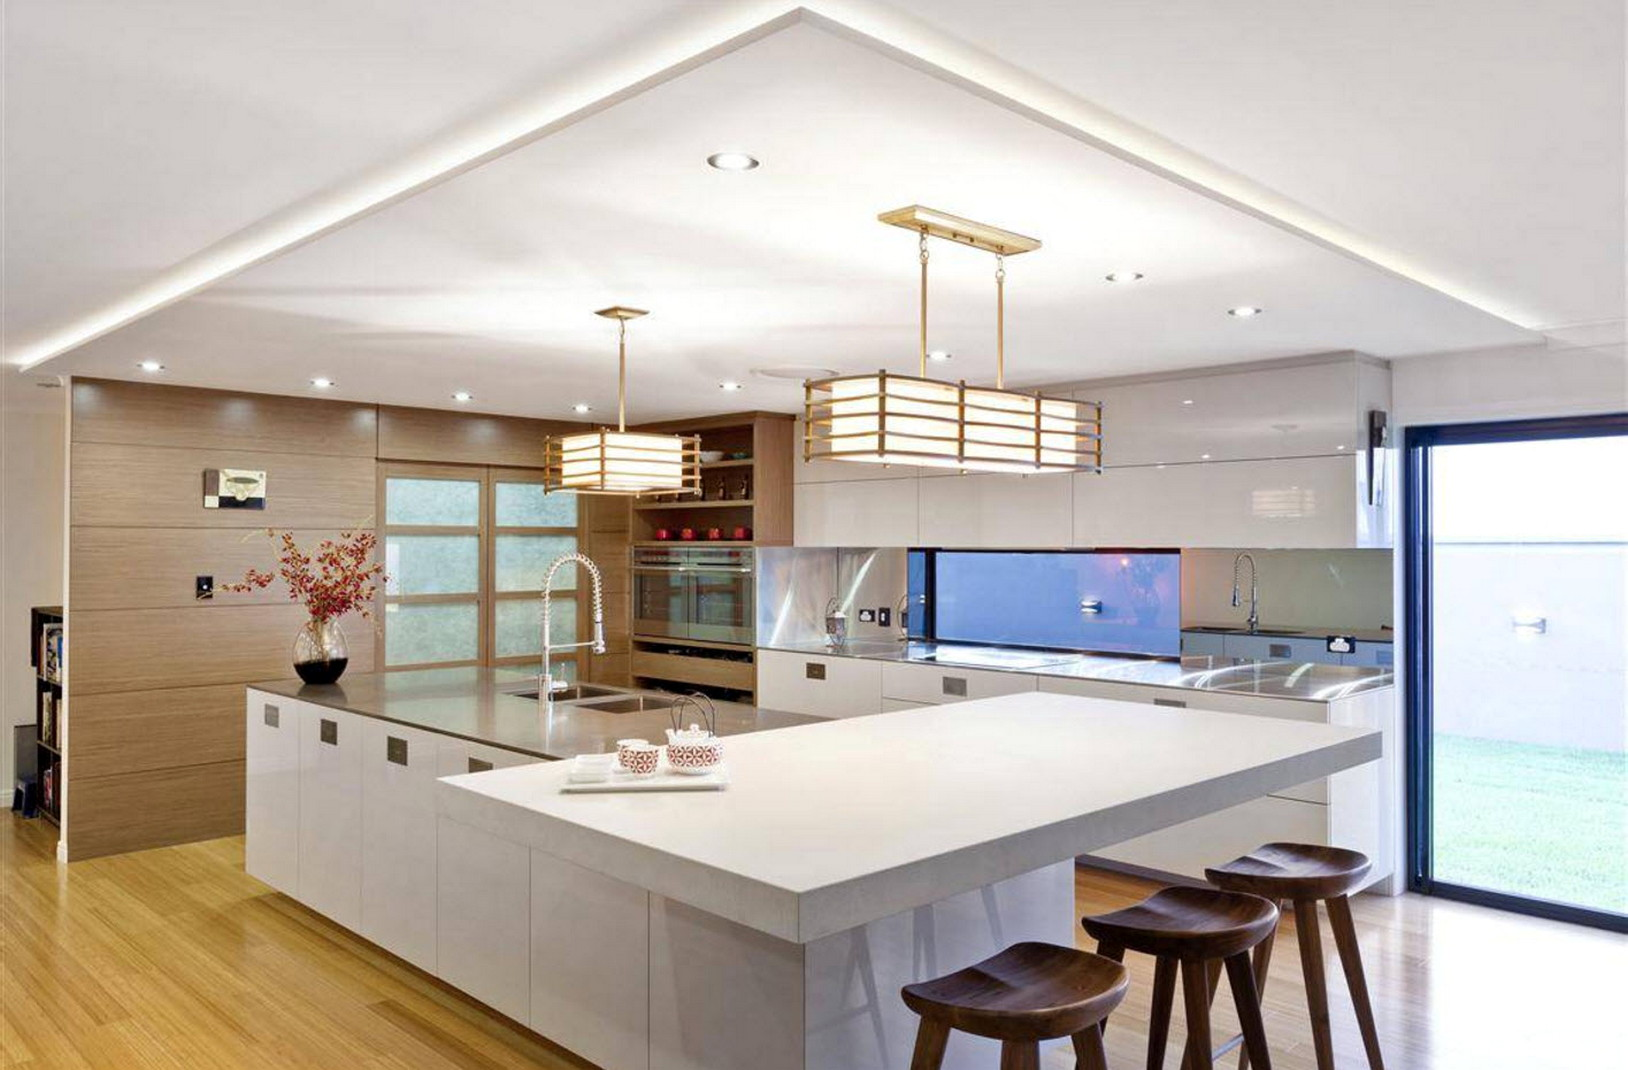 Location for Unique Japanese Kitchen Design